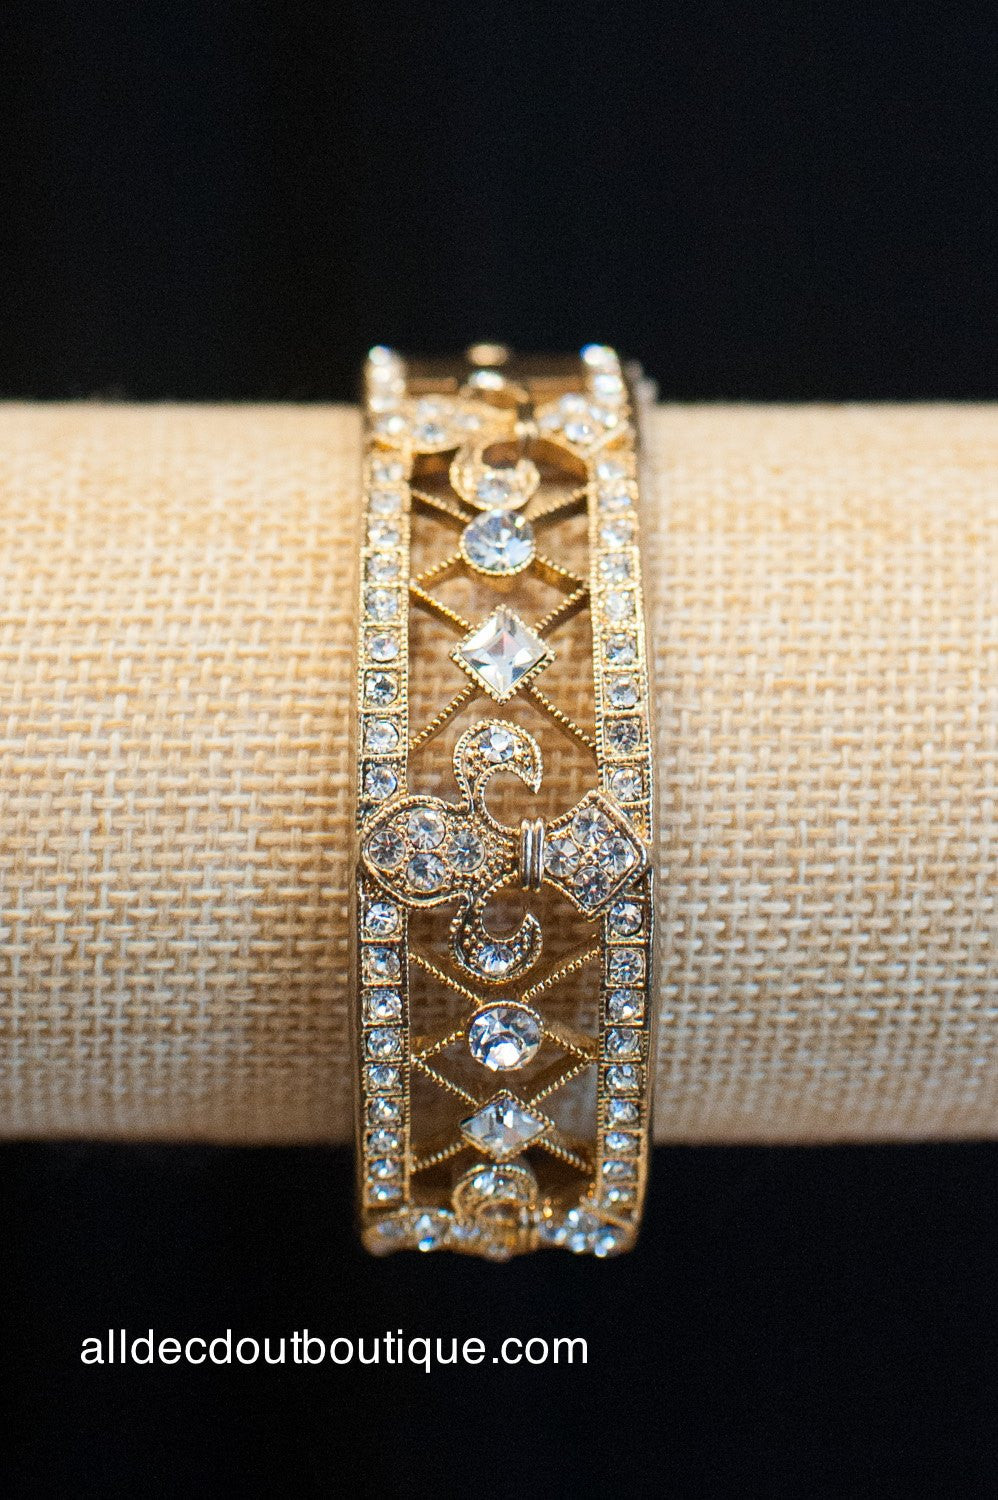 ADO | Fleur De Lis Gold Cuff Bracelet with Latch - All Decd Out